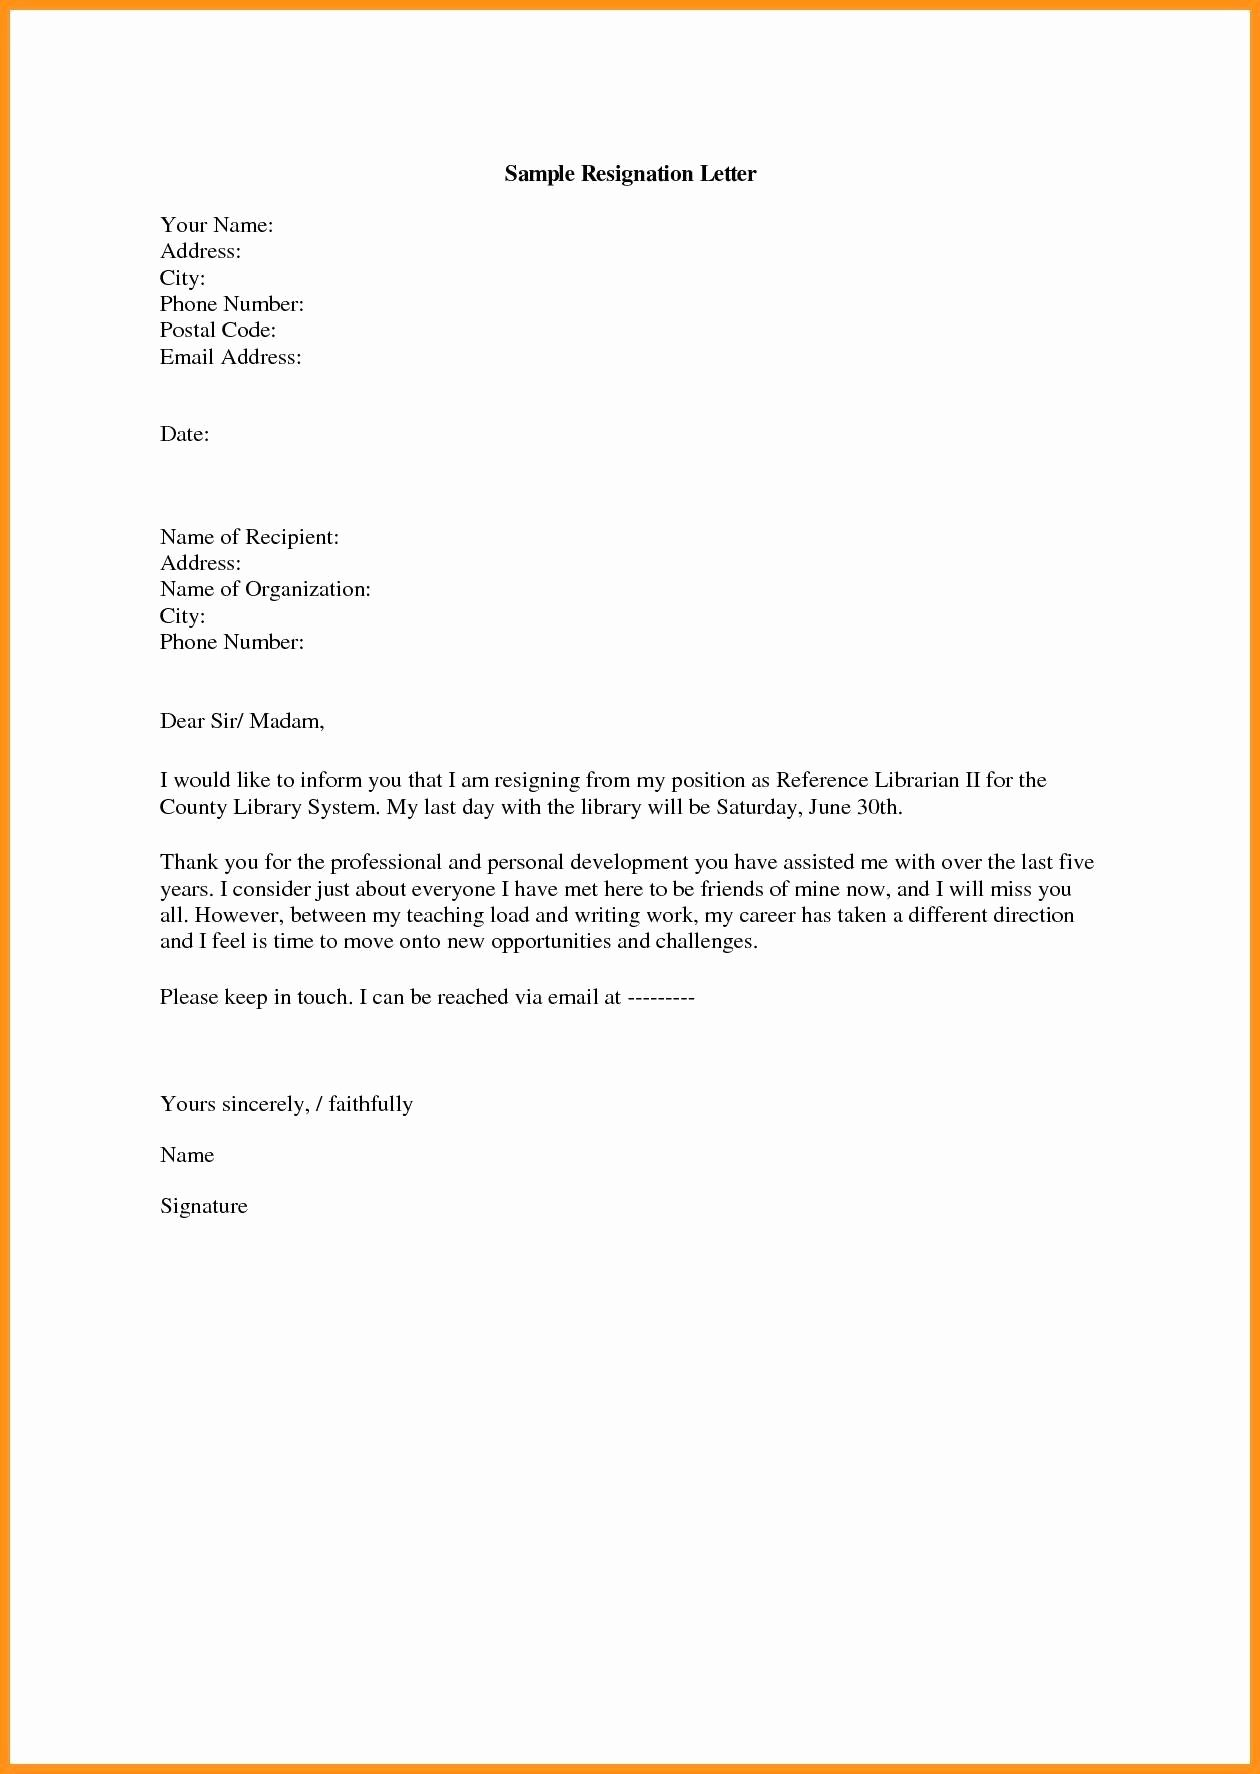 Construction Transmittal Template Awesome Free Construction Letter Transmittal Template Samples